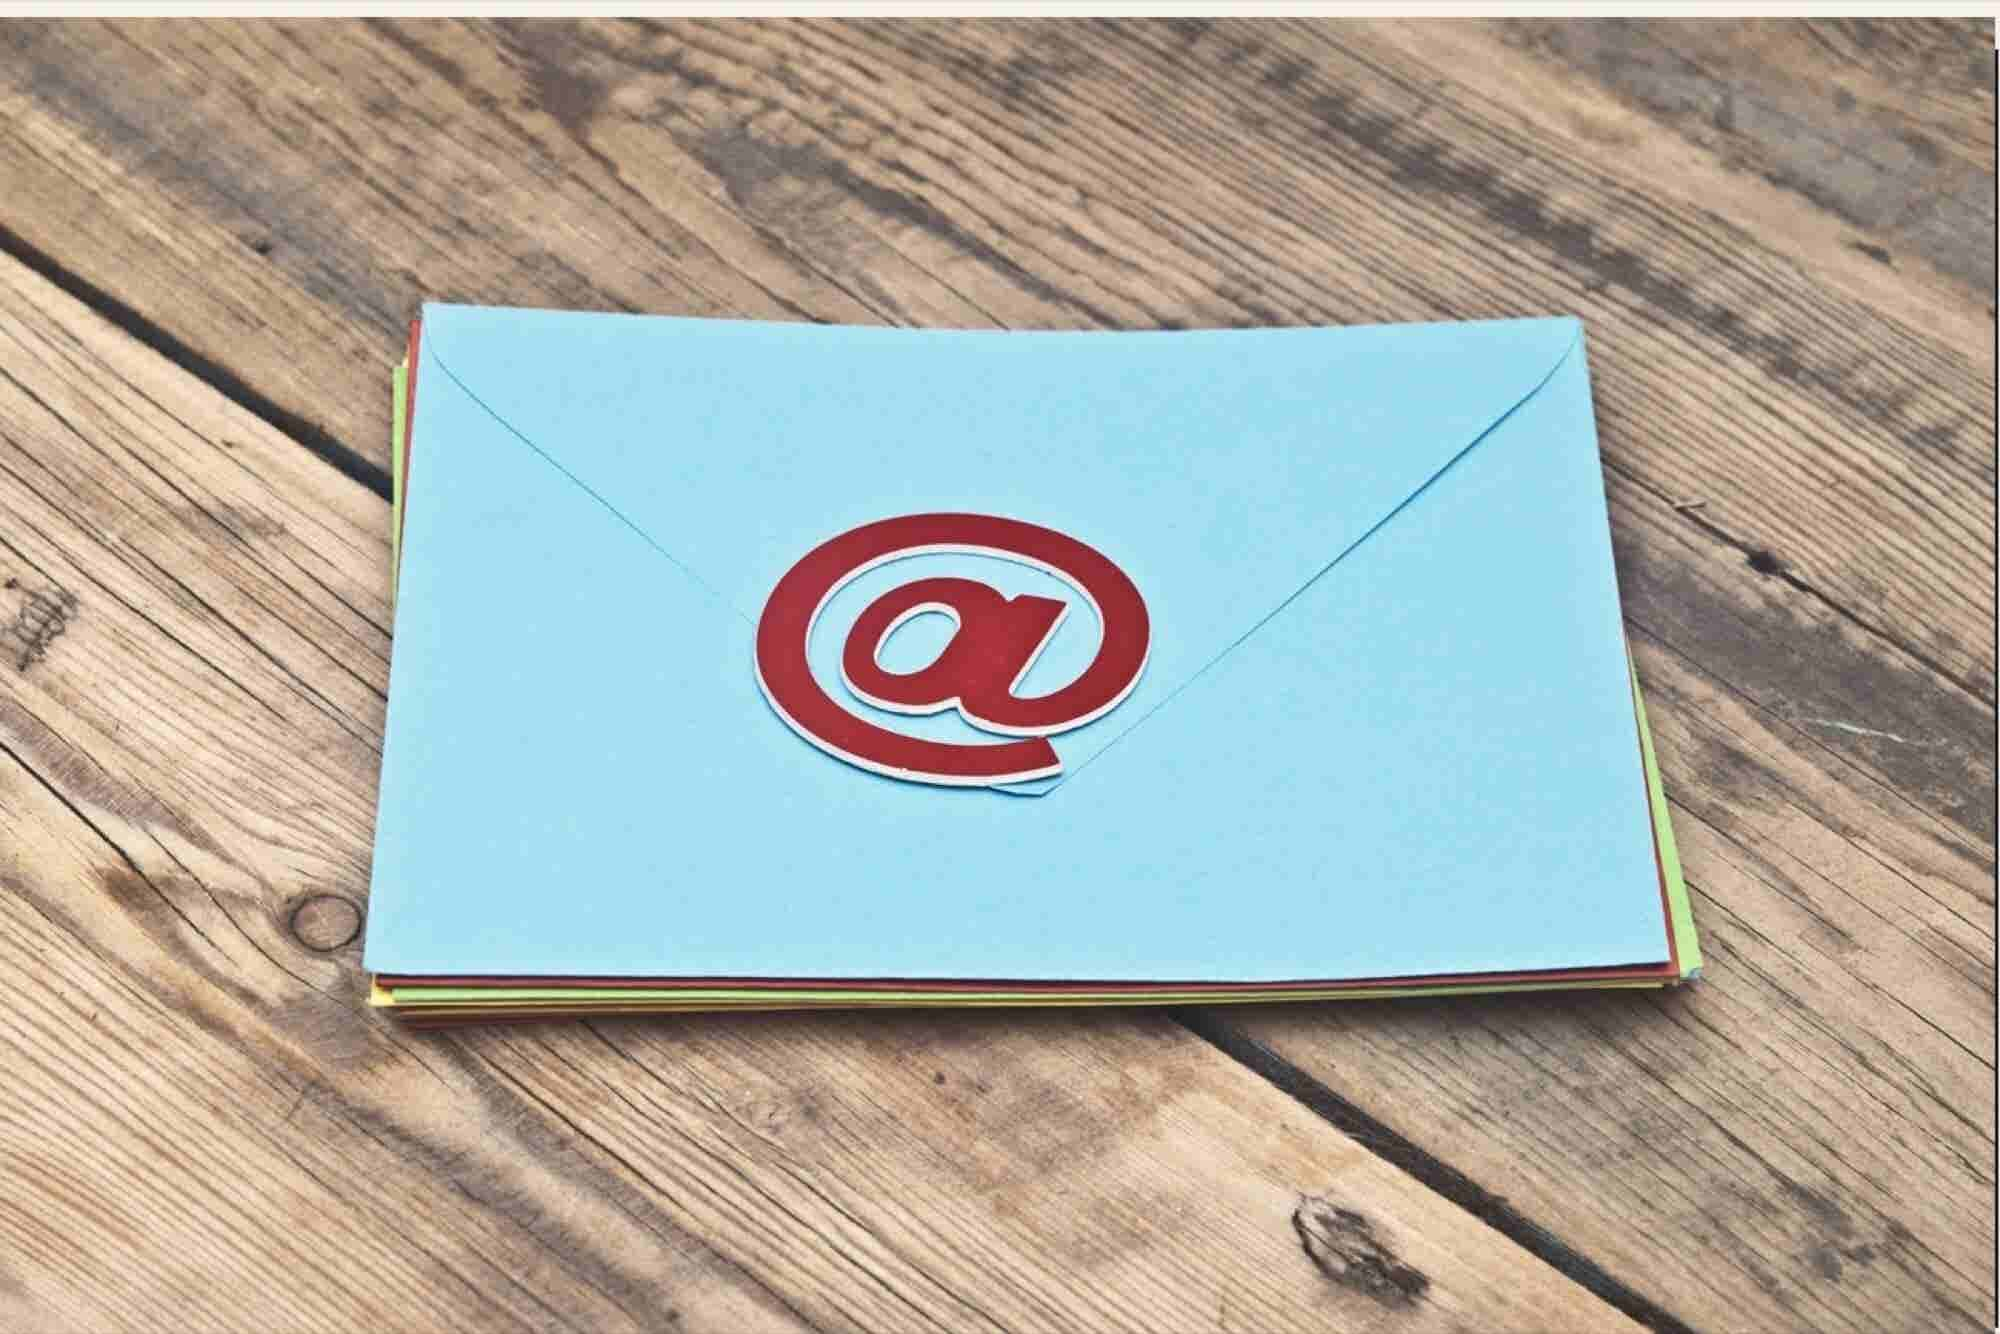 The Best Days to Send Email Campaigns and Other Email Marketing Tips